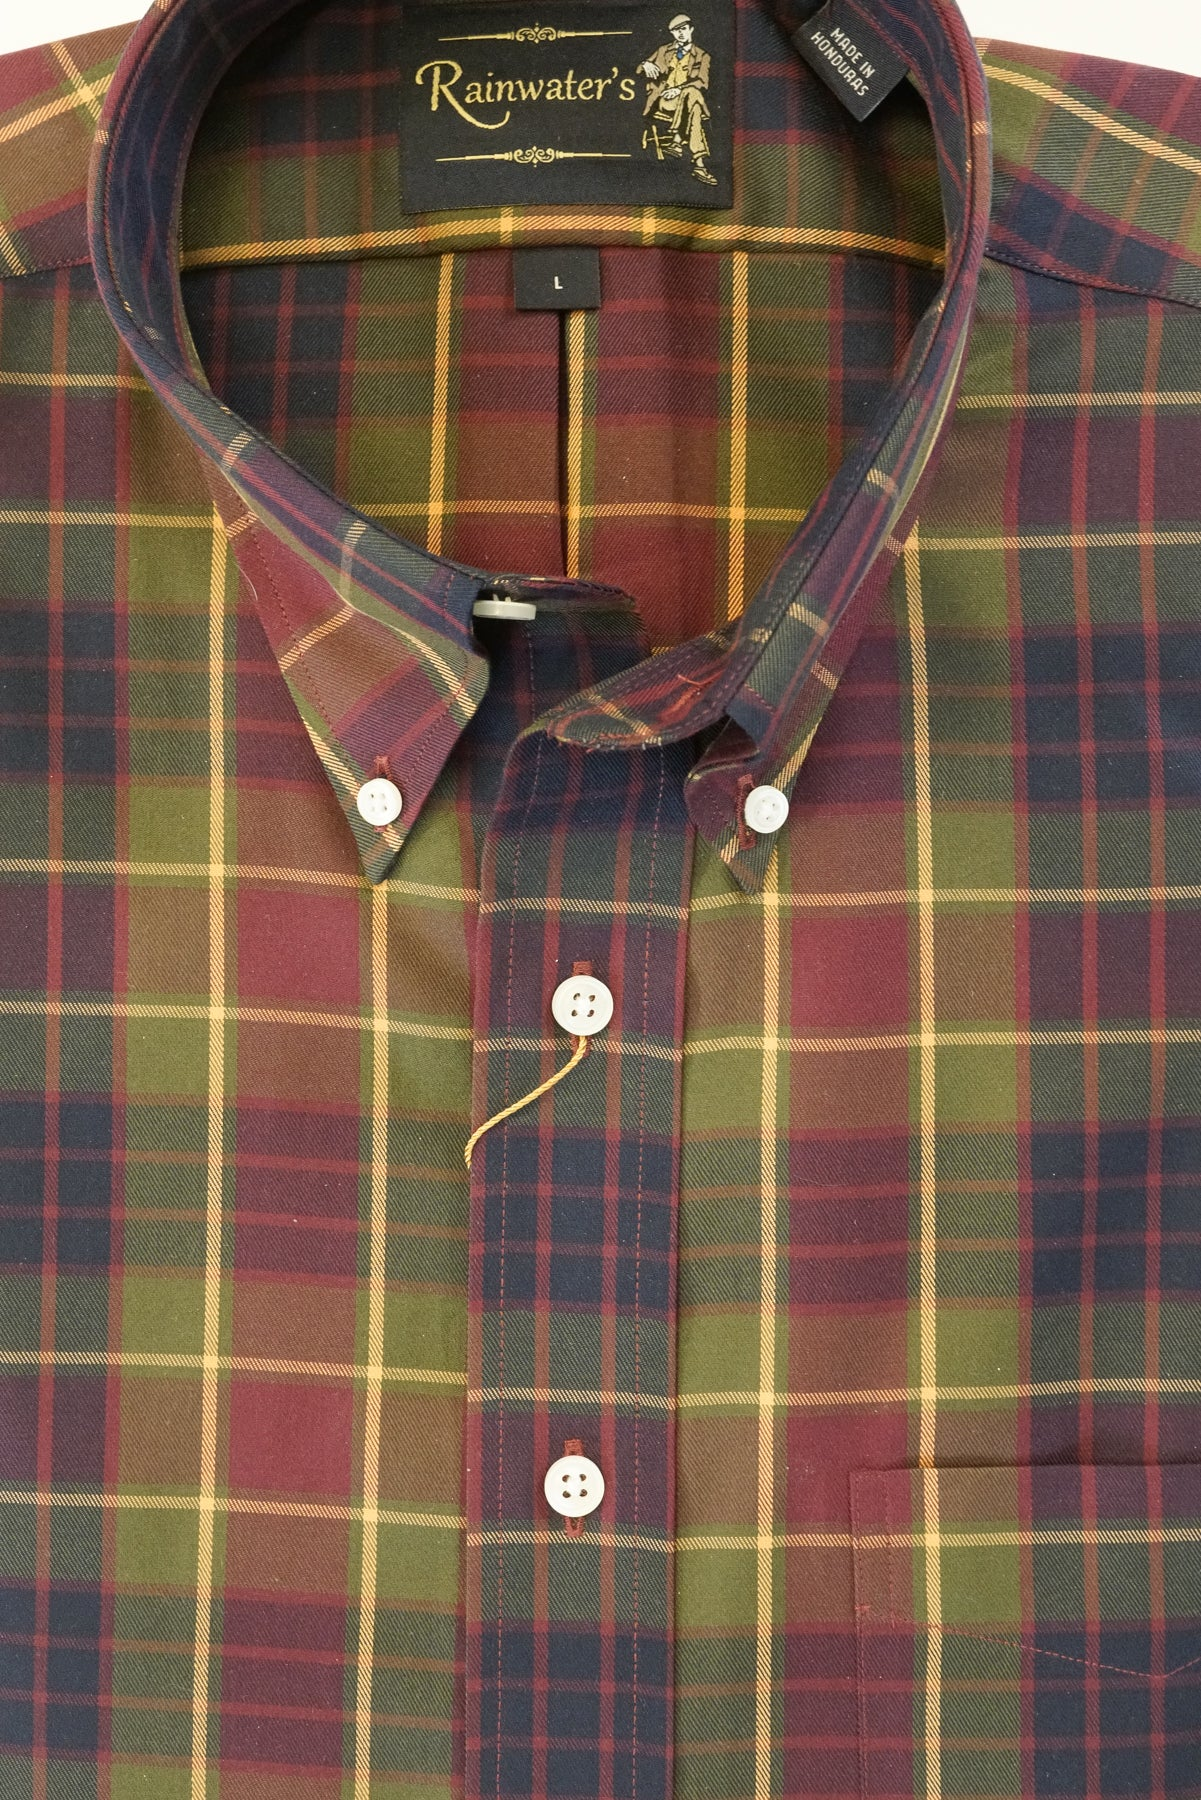 Burgundy Navy & Gold Plaid Wrinkle Free Button Down Sport Shirt by Rainwater's - Rainwater's